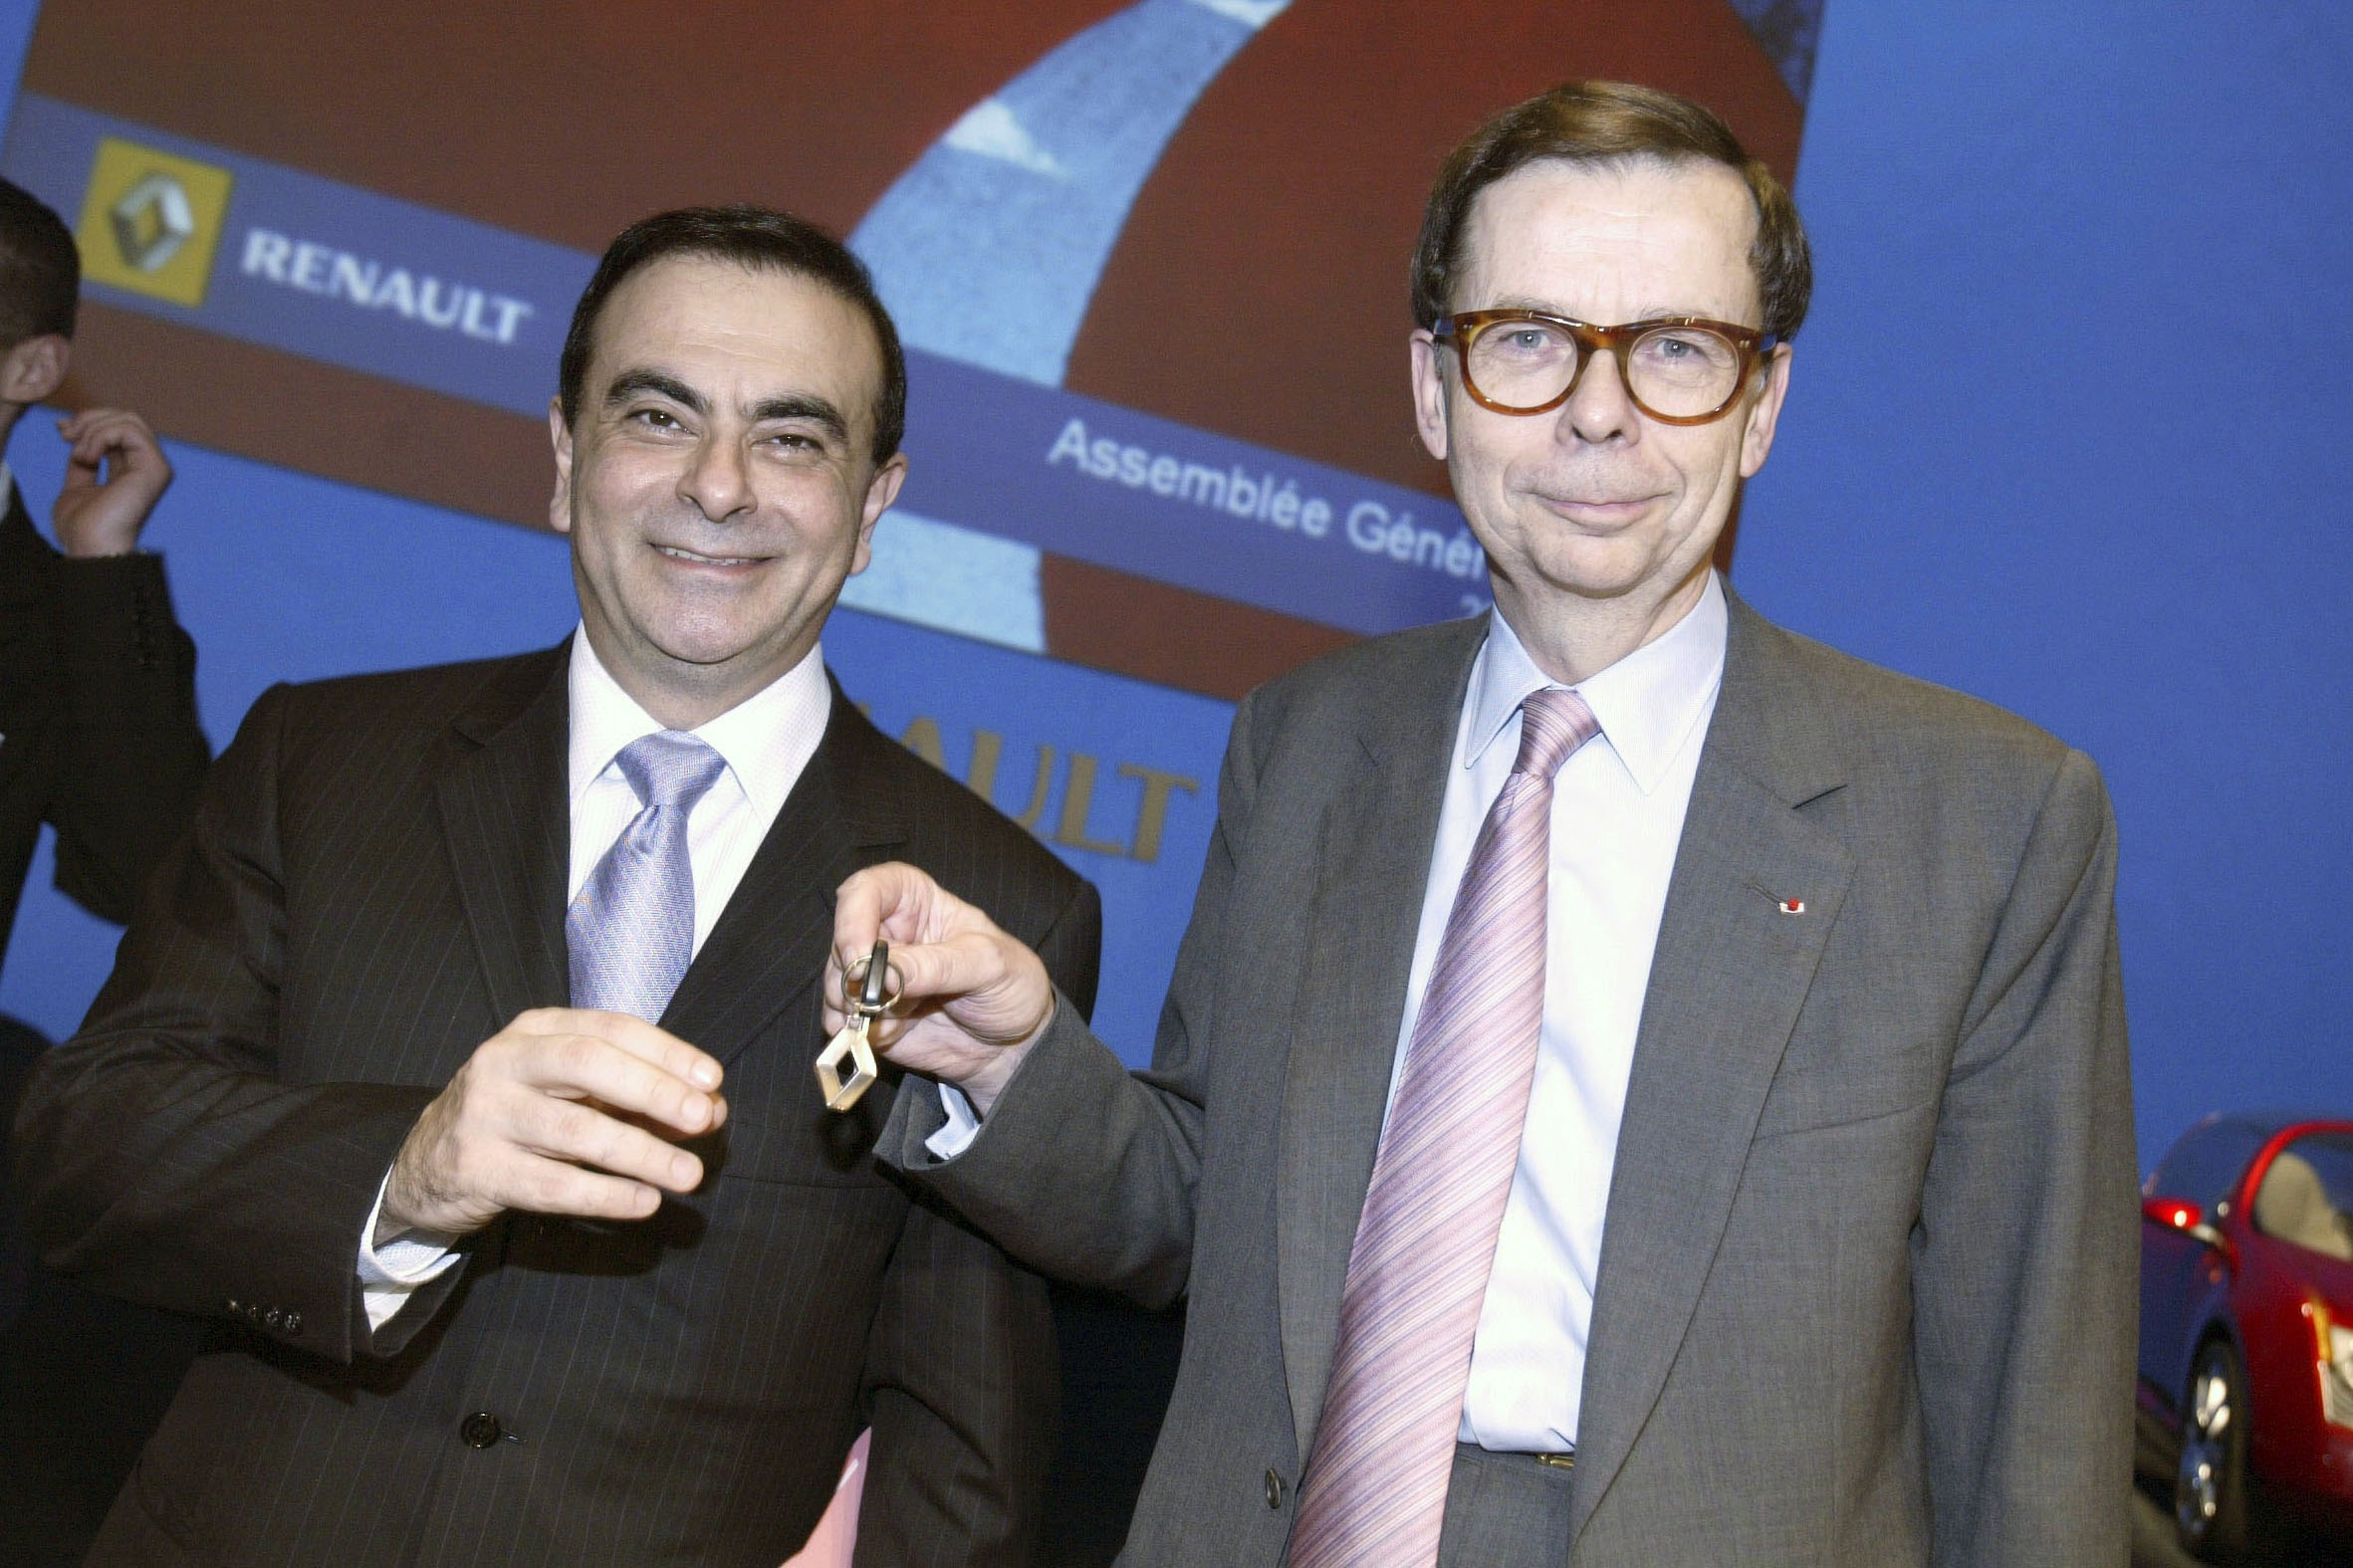 Louis Schweitzer, right, non-executive chairman of Renault,